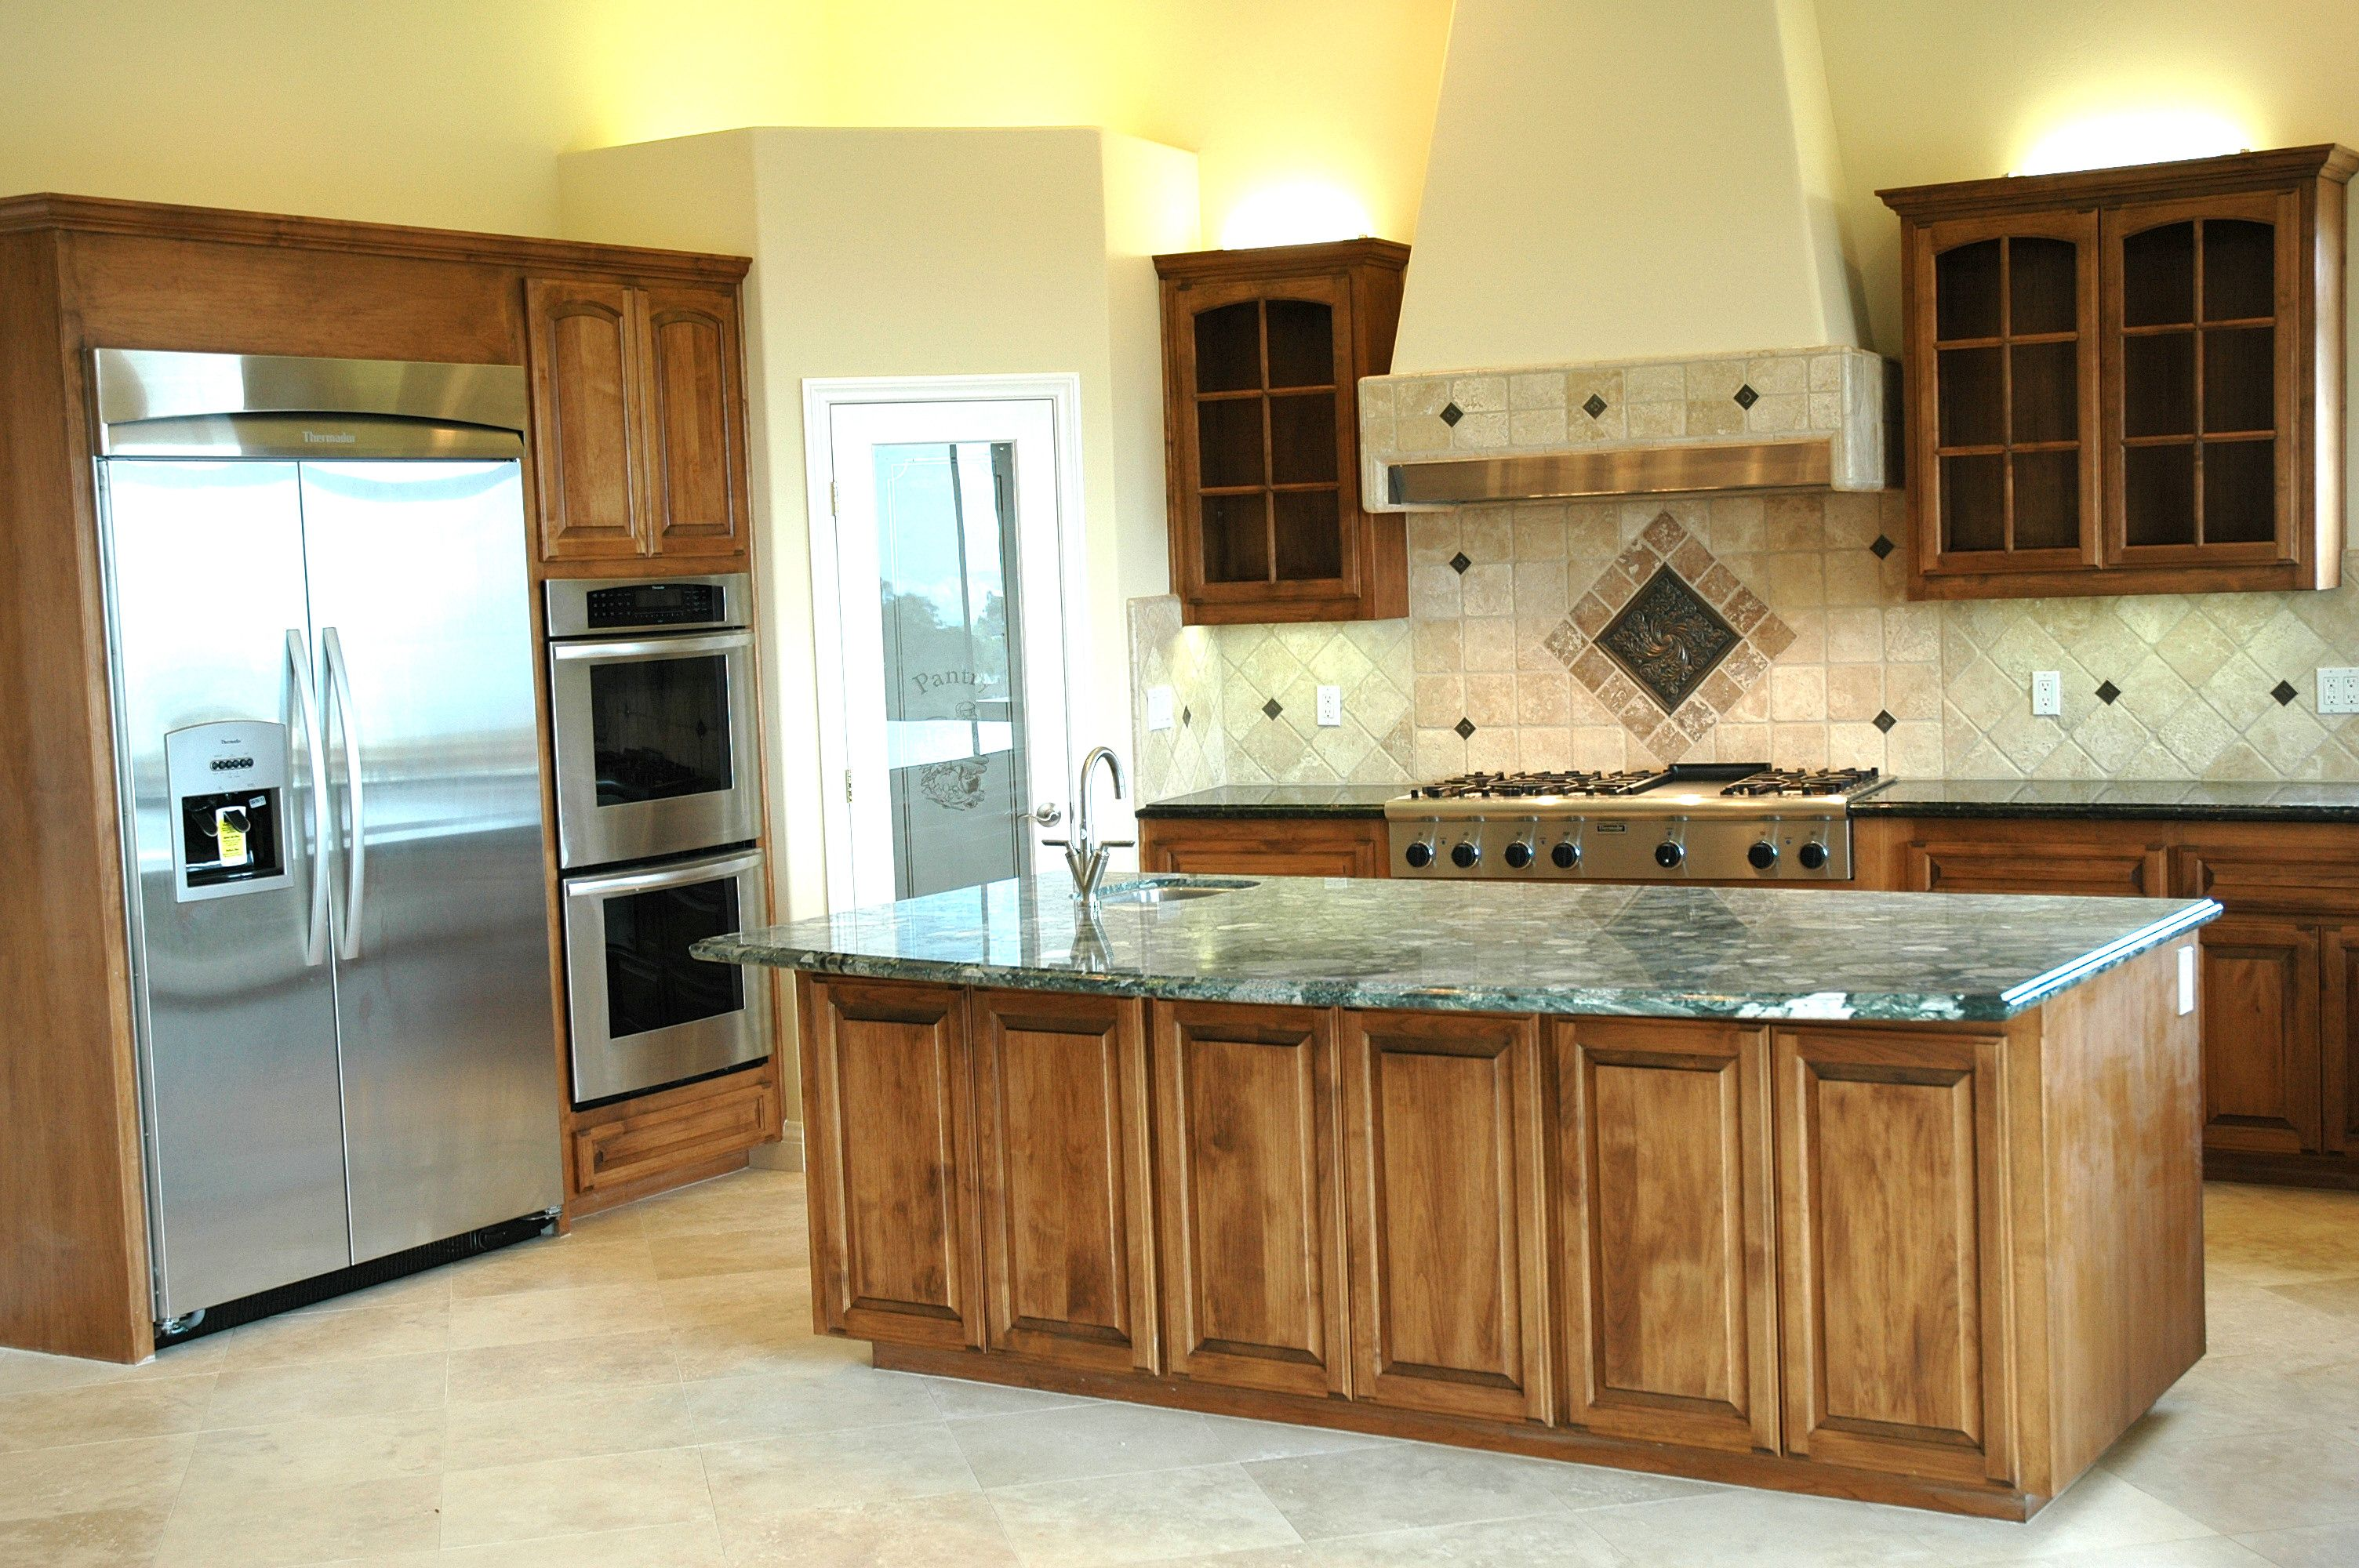 Holland S Custom Cabinets San Diego County 619 443 6081 Custom Cabinets Cabinet Kitchen